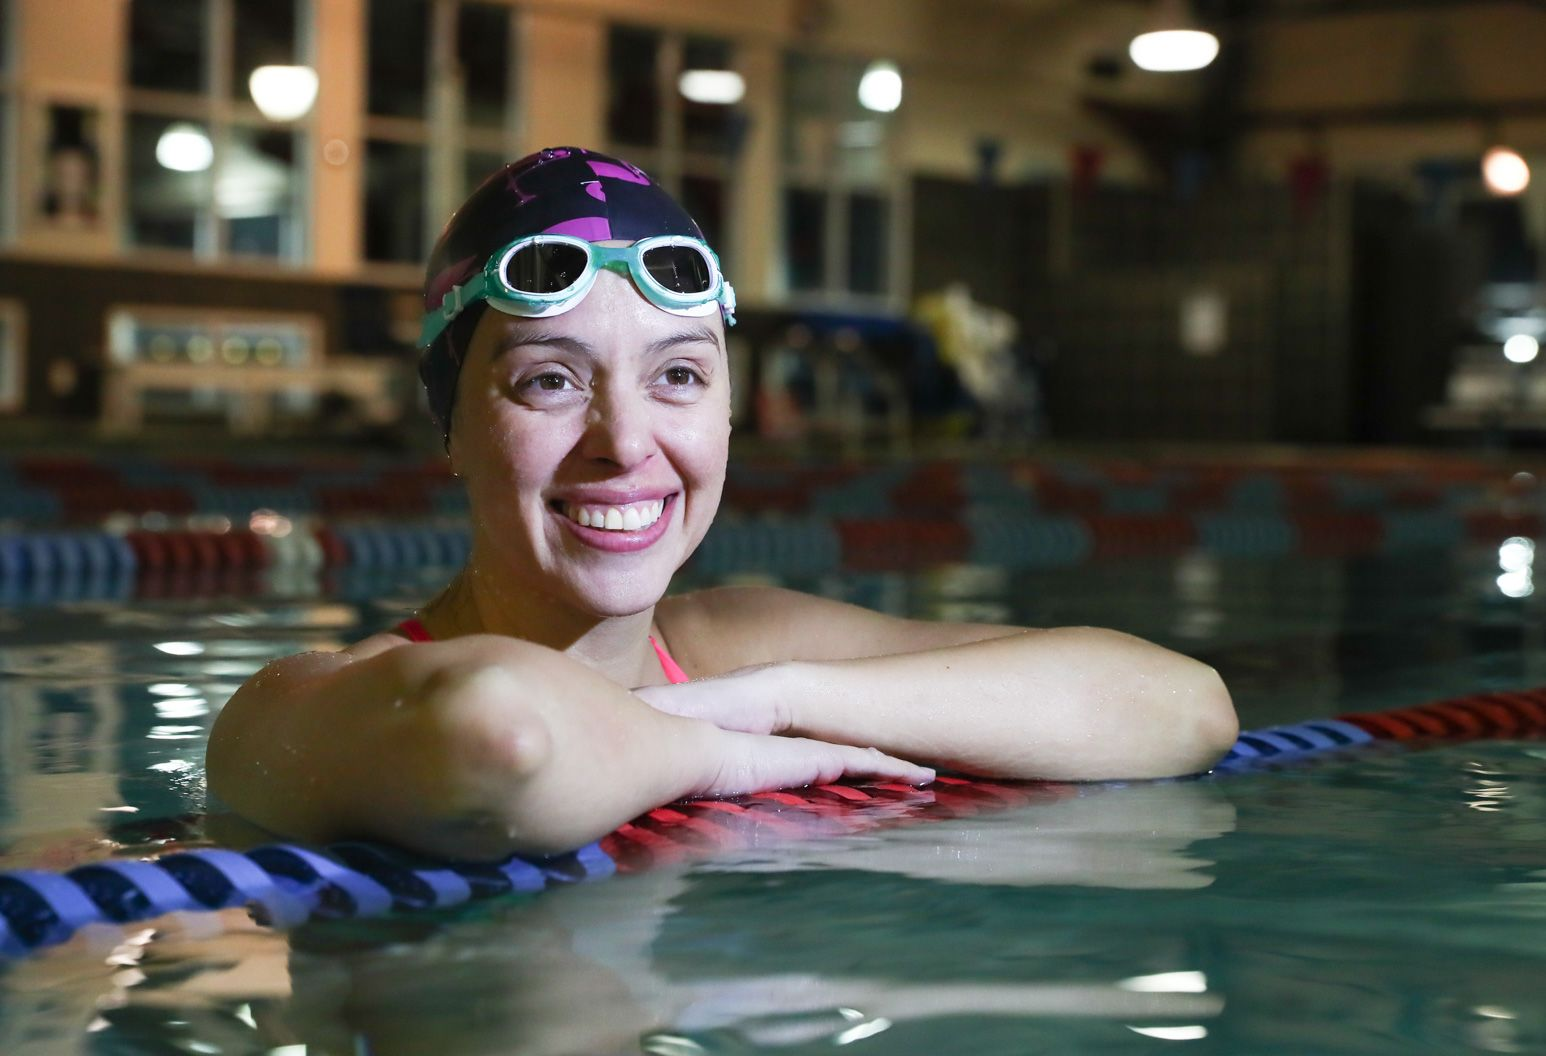 A 33-year-old woman in a pool rests her arms on the red and blue lane line. She smiles and looks off into the distance. She wears a purple swim cap and teal goggles resting above her eyes.